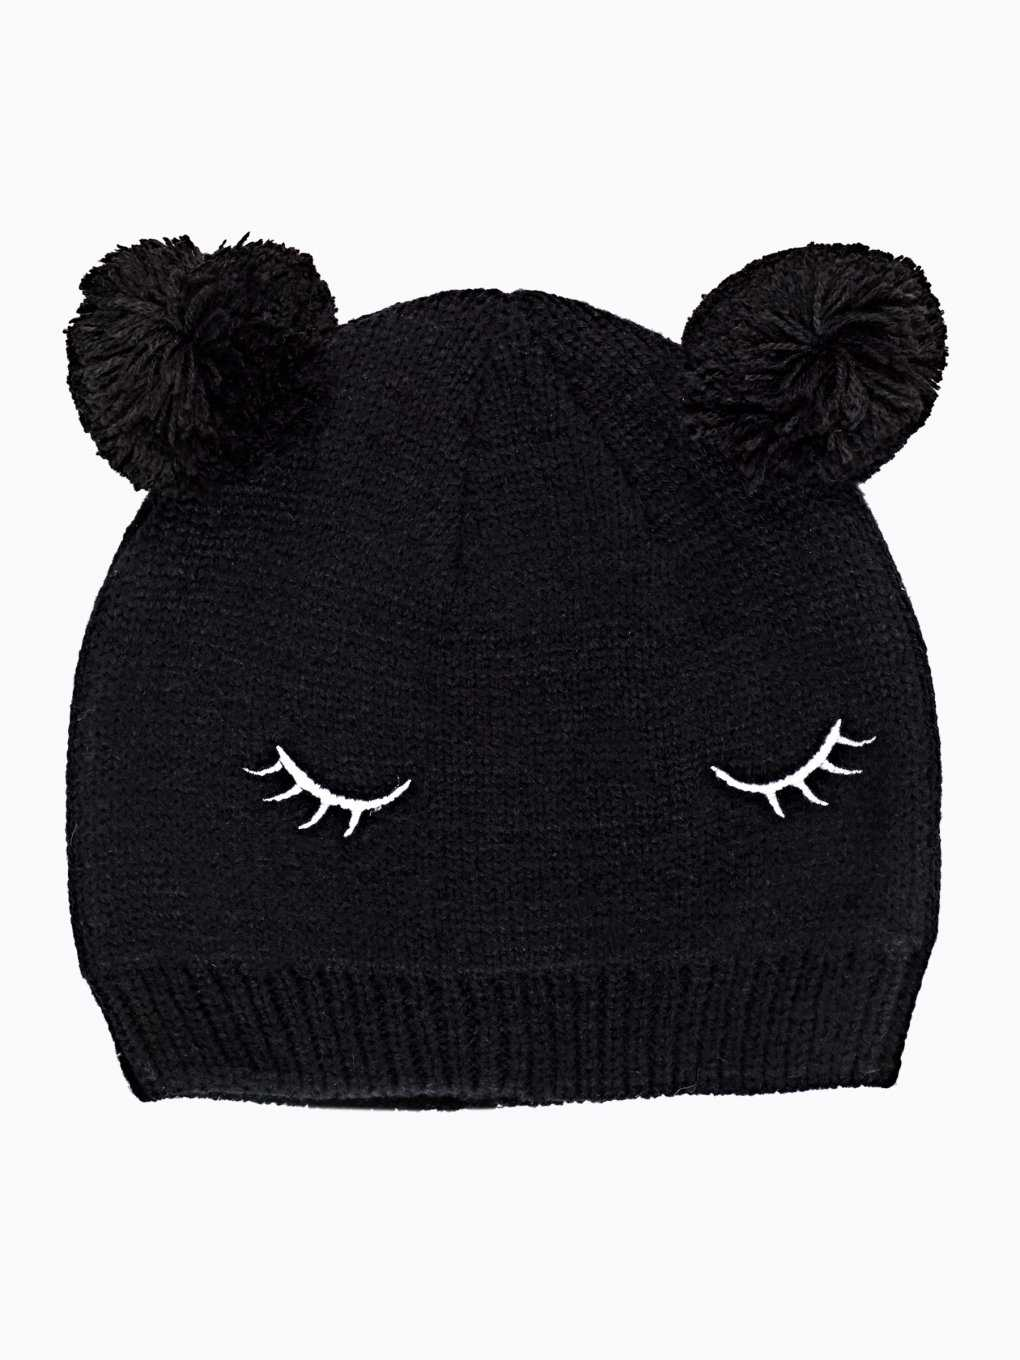 RIB-KNIT BEANIE WITH EARS